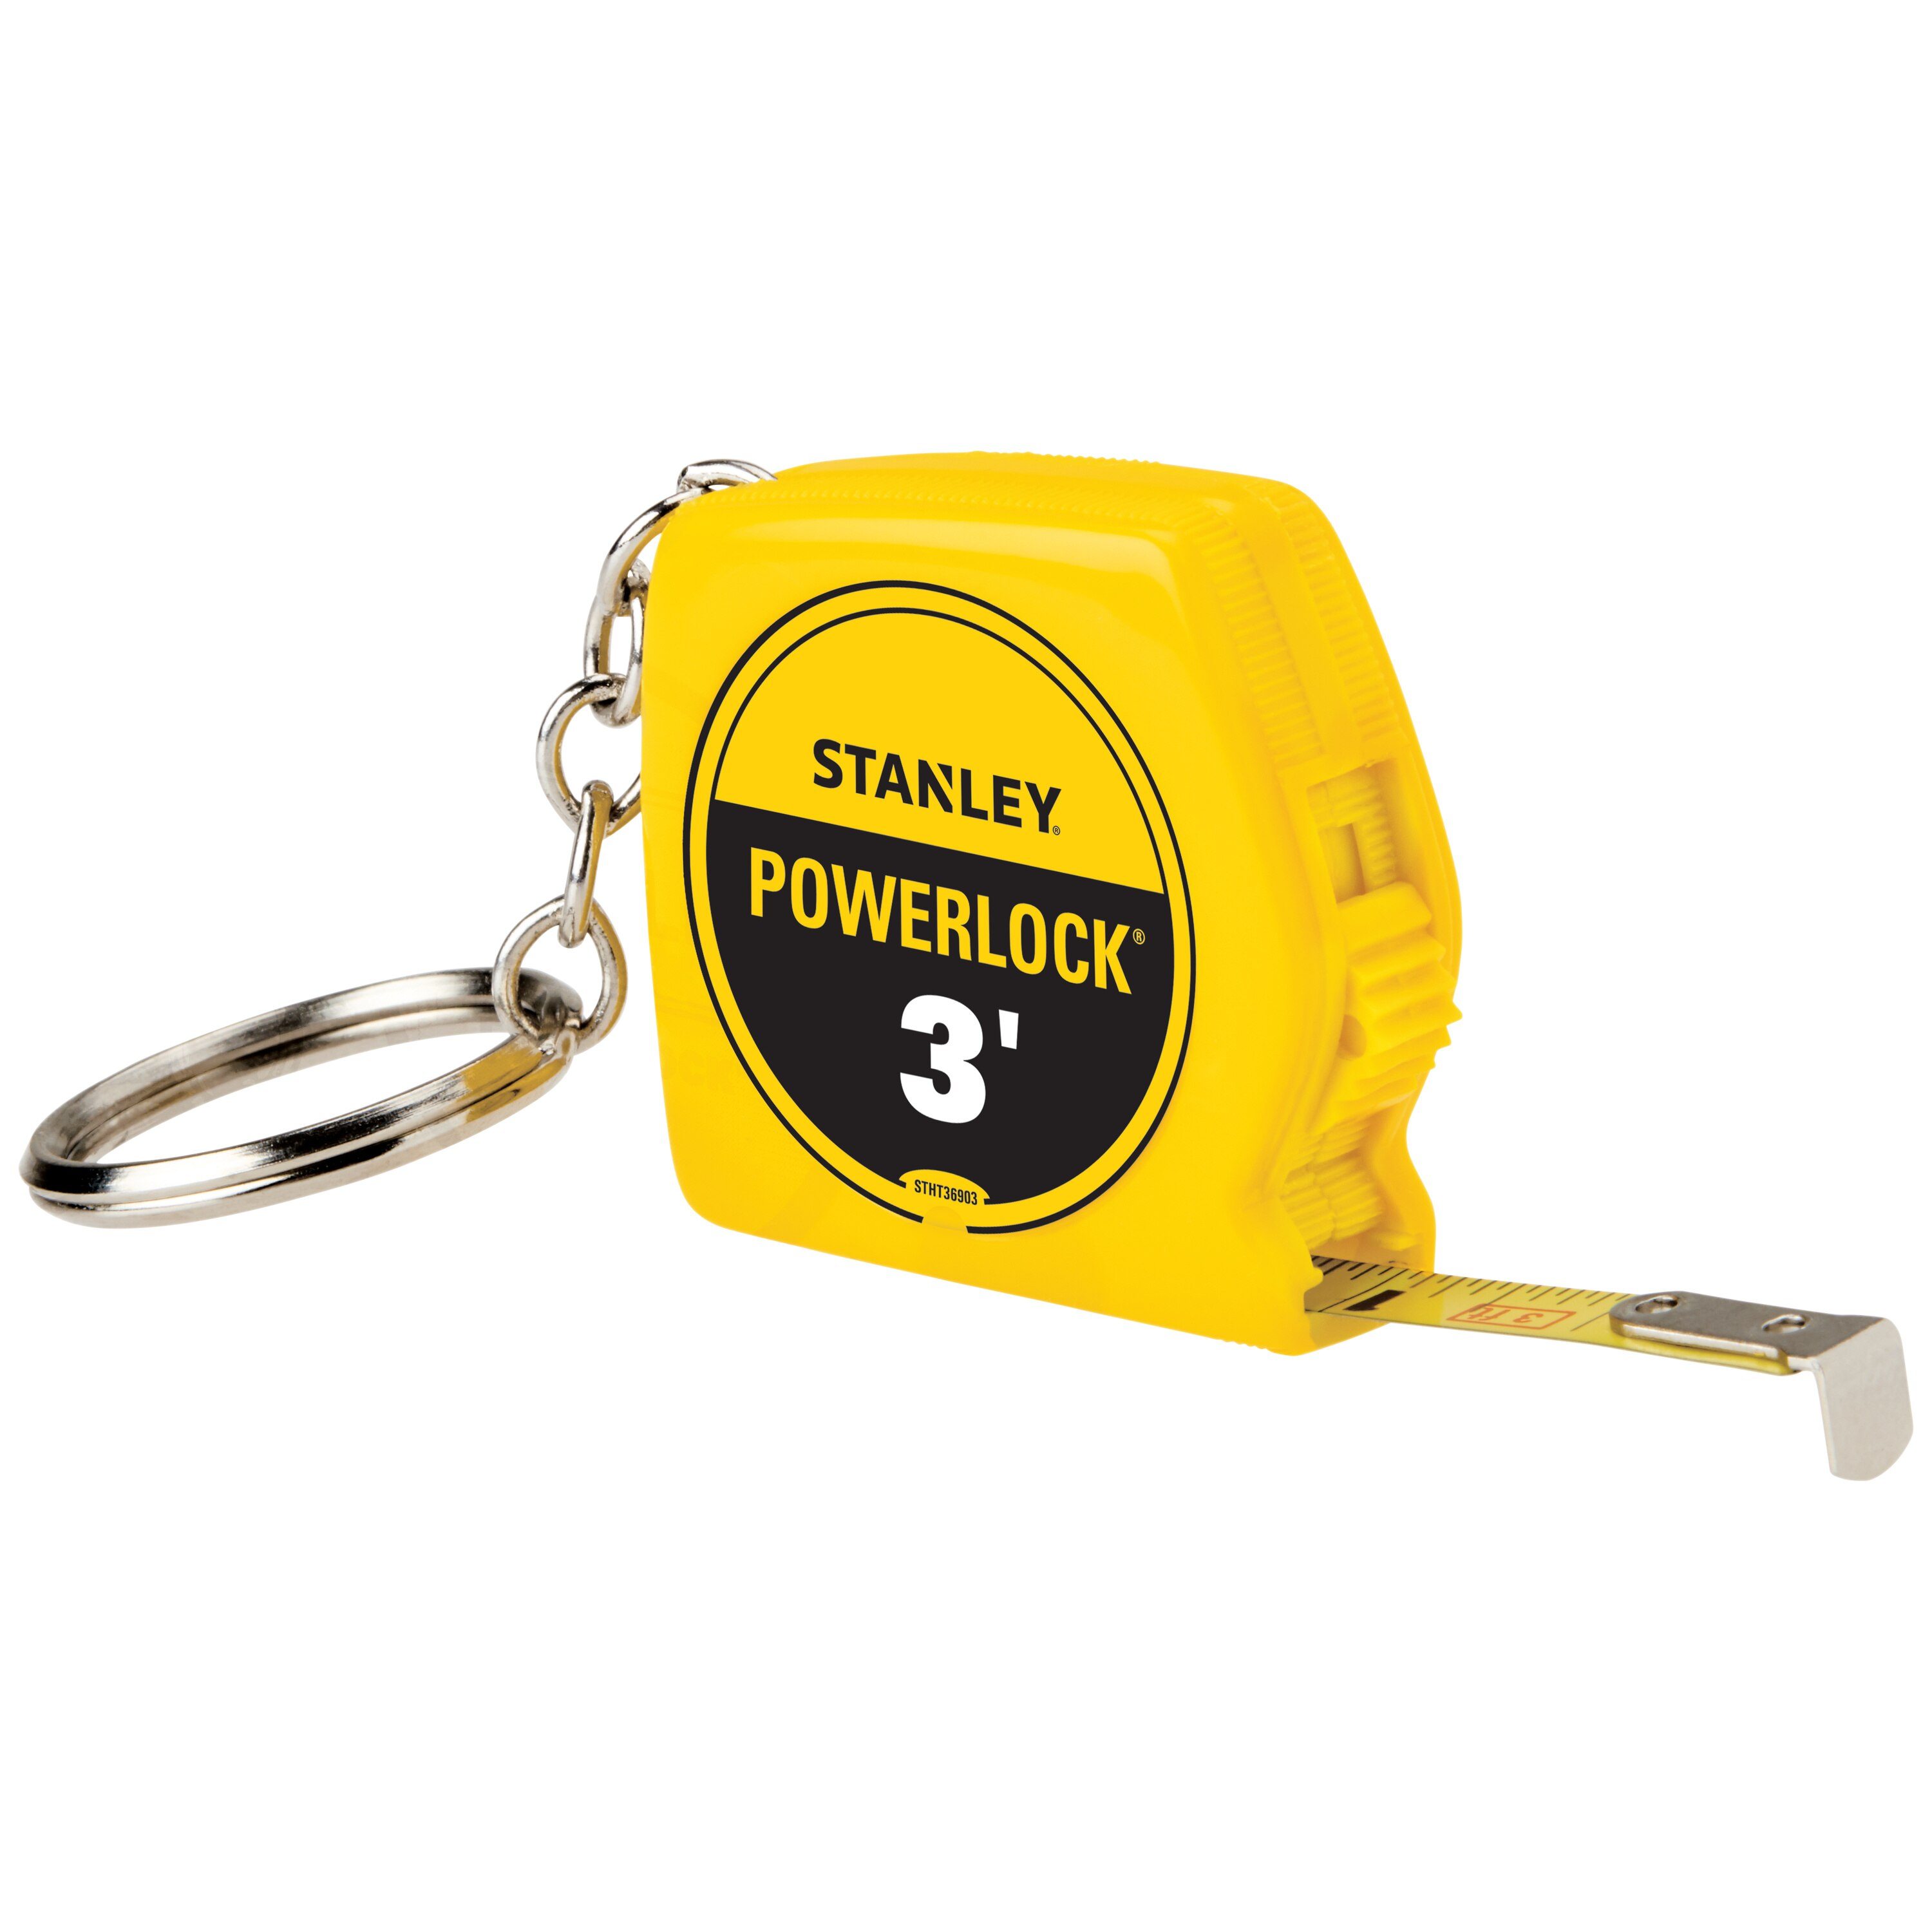 Stanley Tools - PowerLock 3 ft Keychain Tape Measure - STHT36903